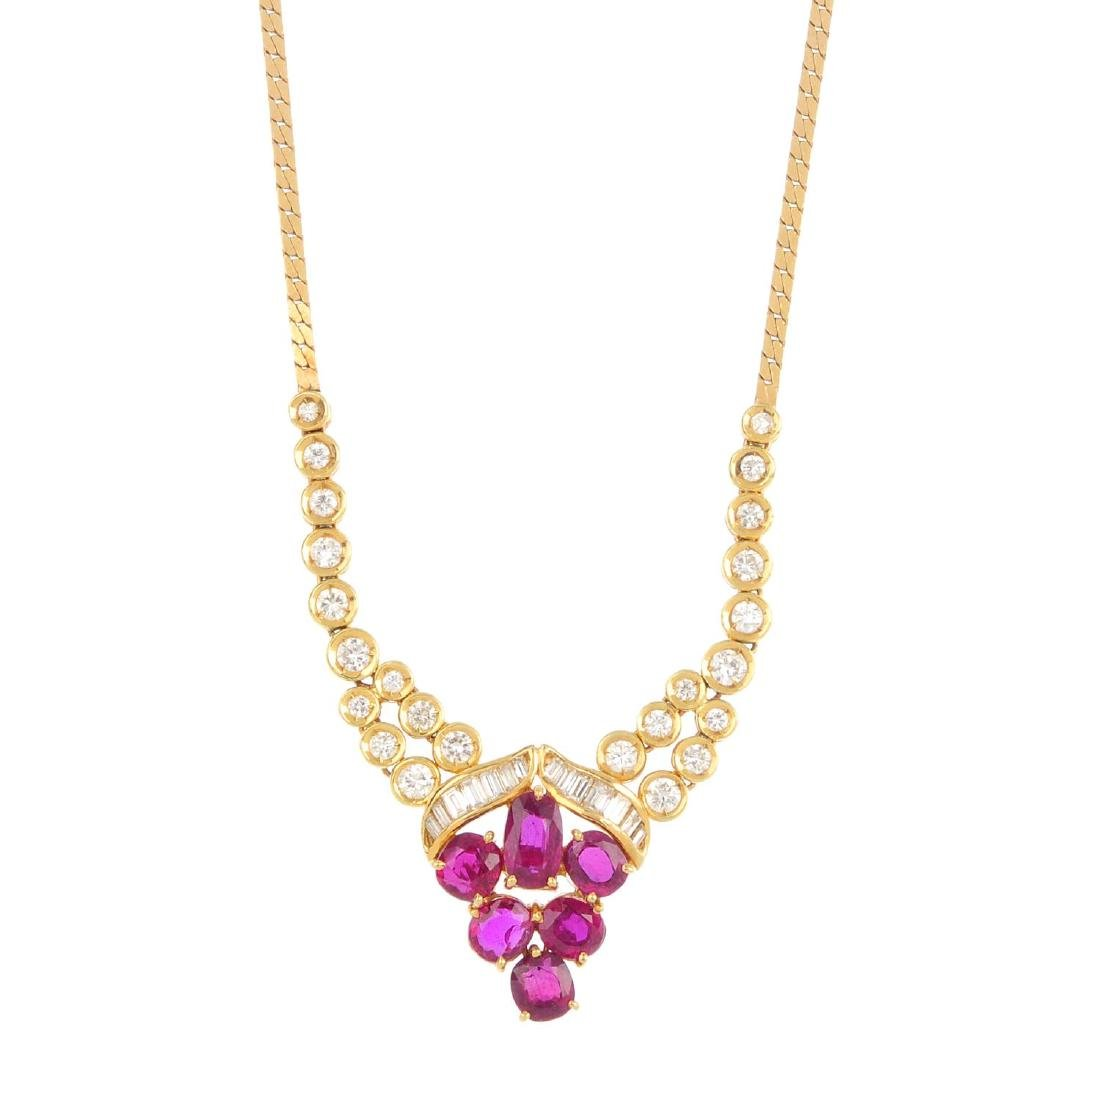 A ruby and diamond necklace. The circular and